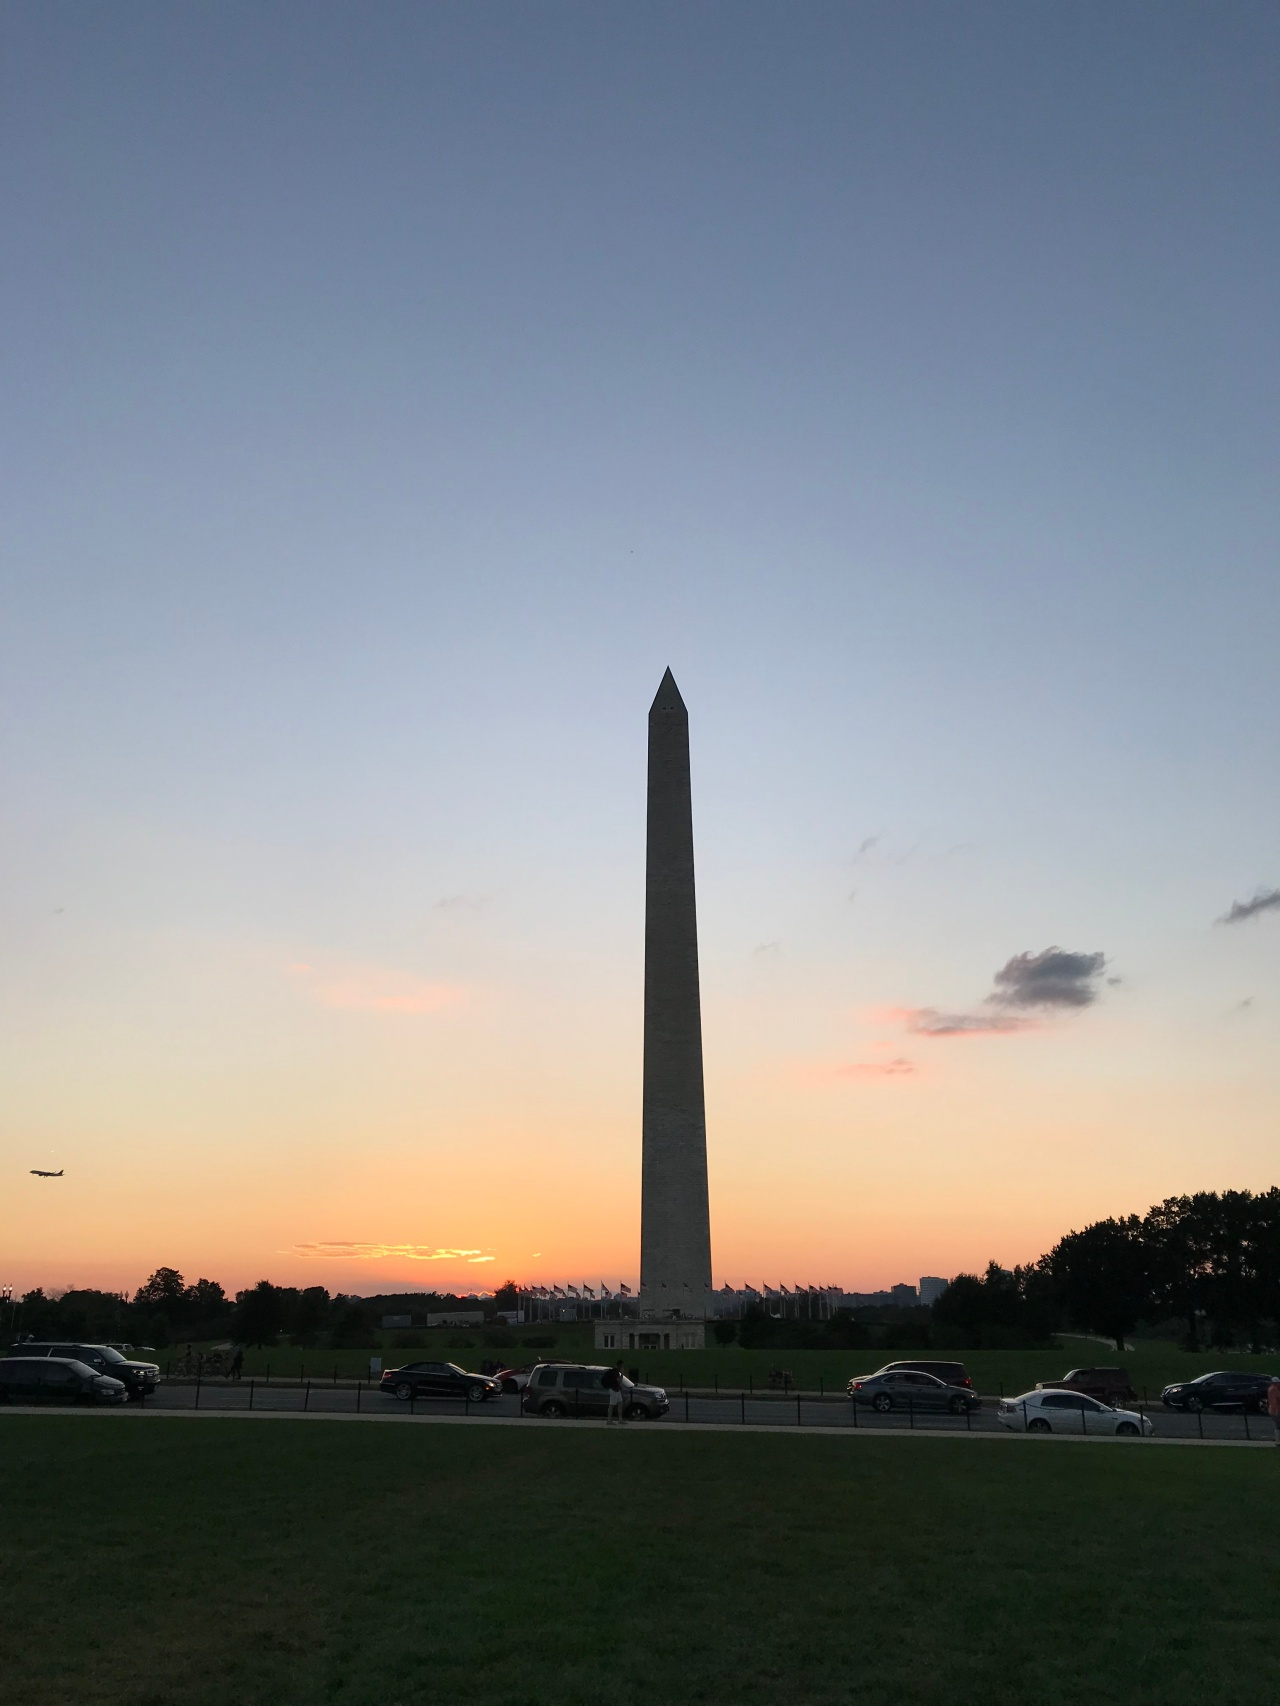 Best Things to do in Washington D.C. (from a student'sperspective)